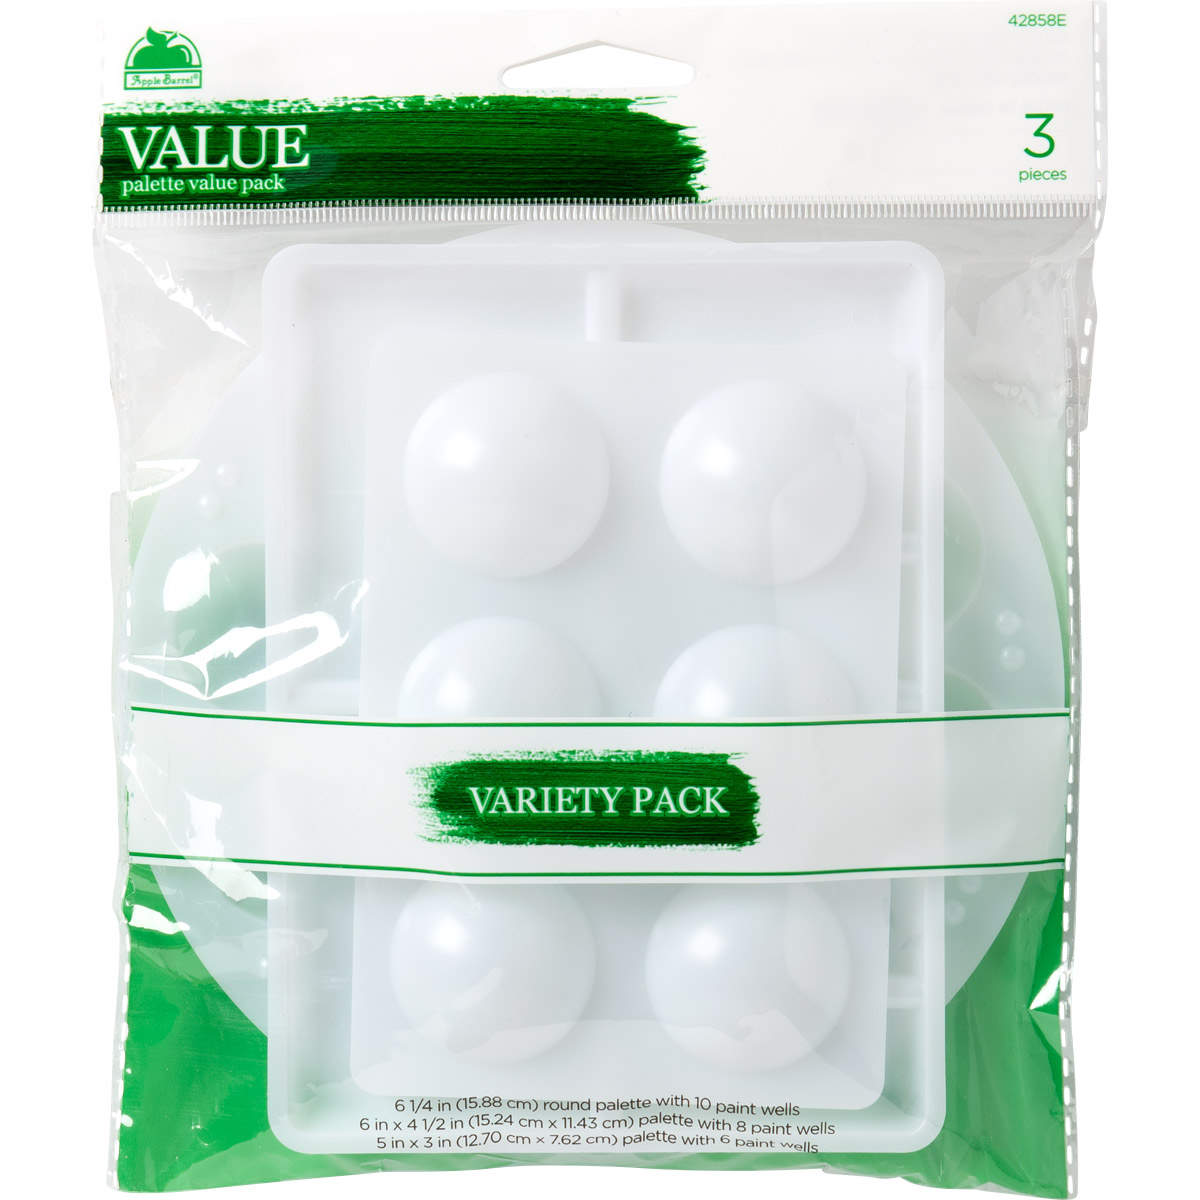 Plaid ® Palette Value Pack - 42858